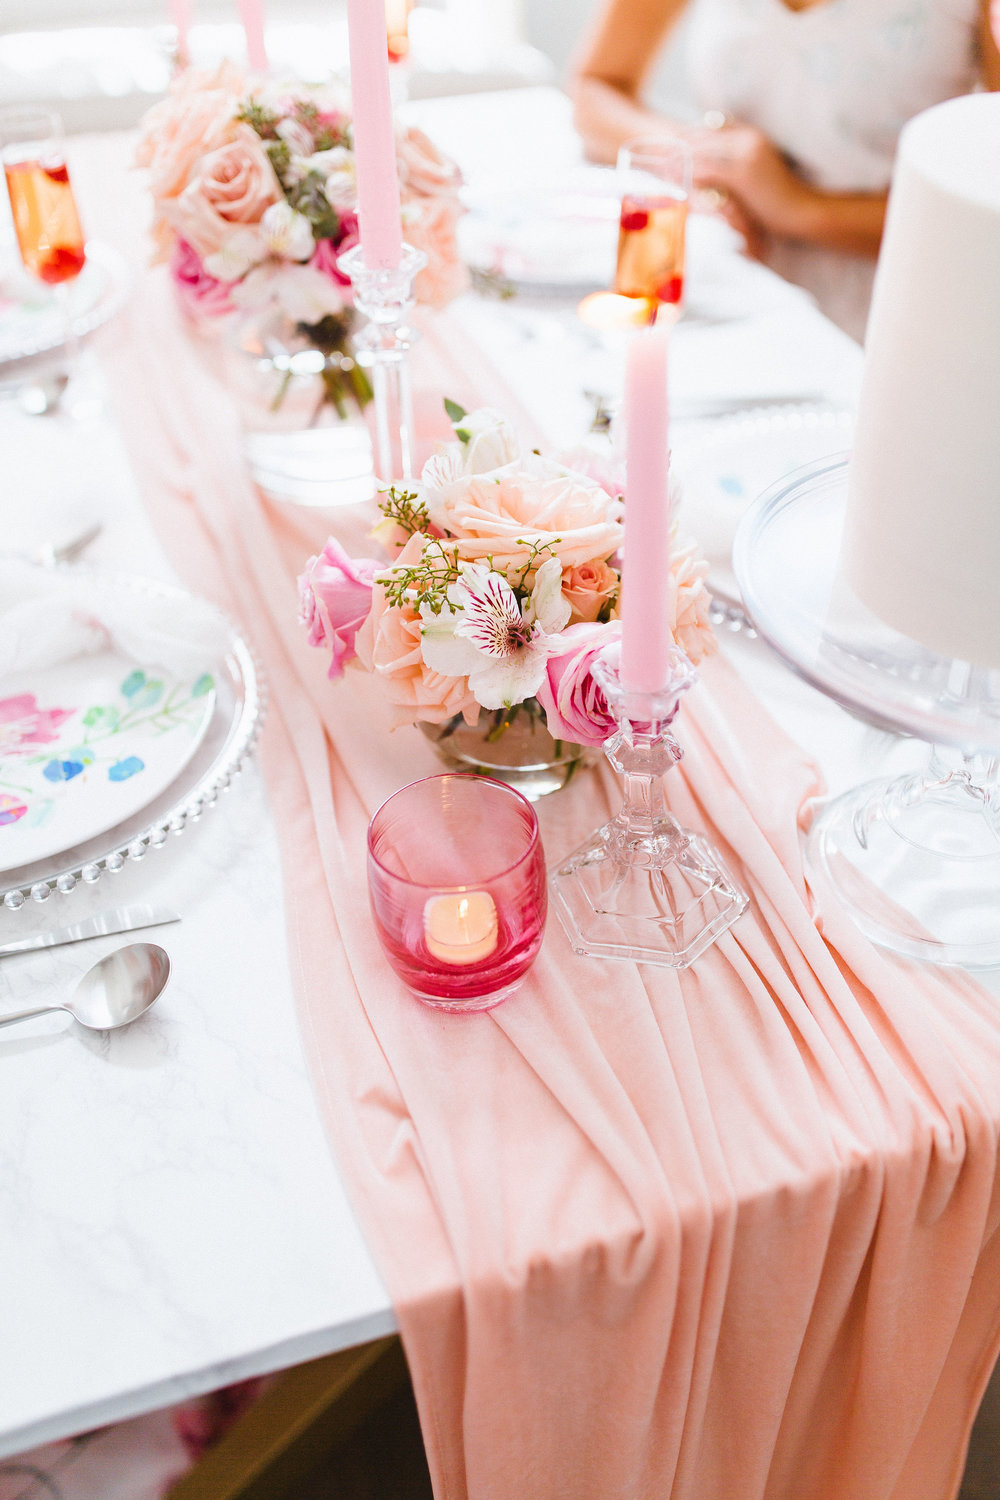 Soft Living Coral Inspired Silk Table runners for wedding and event tablescape (Photo by:  Francesca Penko Photography)